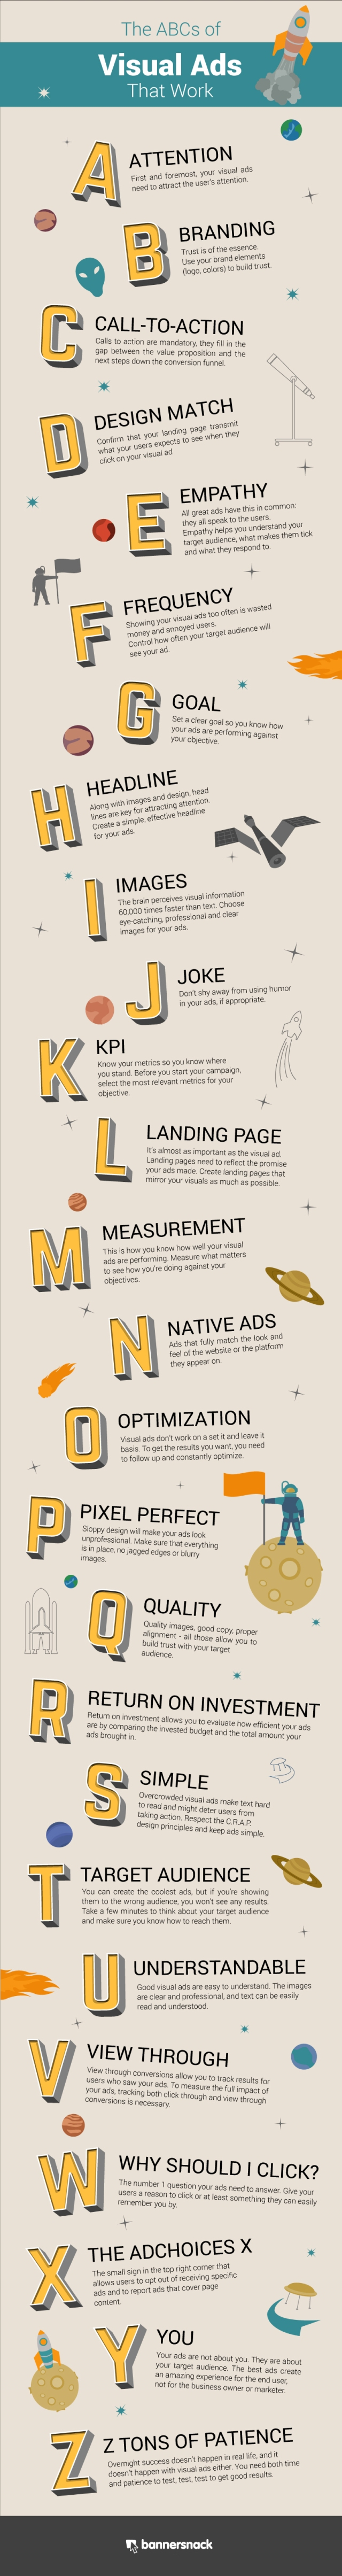 26 Tips To Create Visual Social Media Adverts That Generate Results